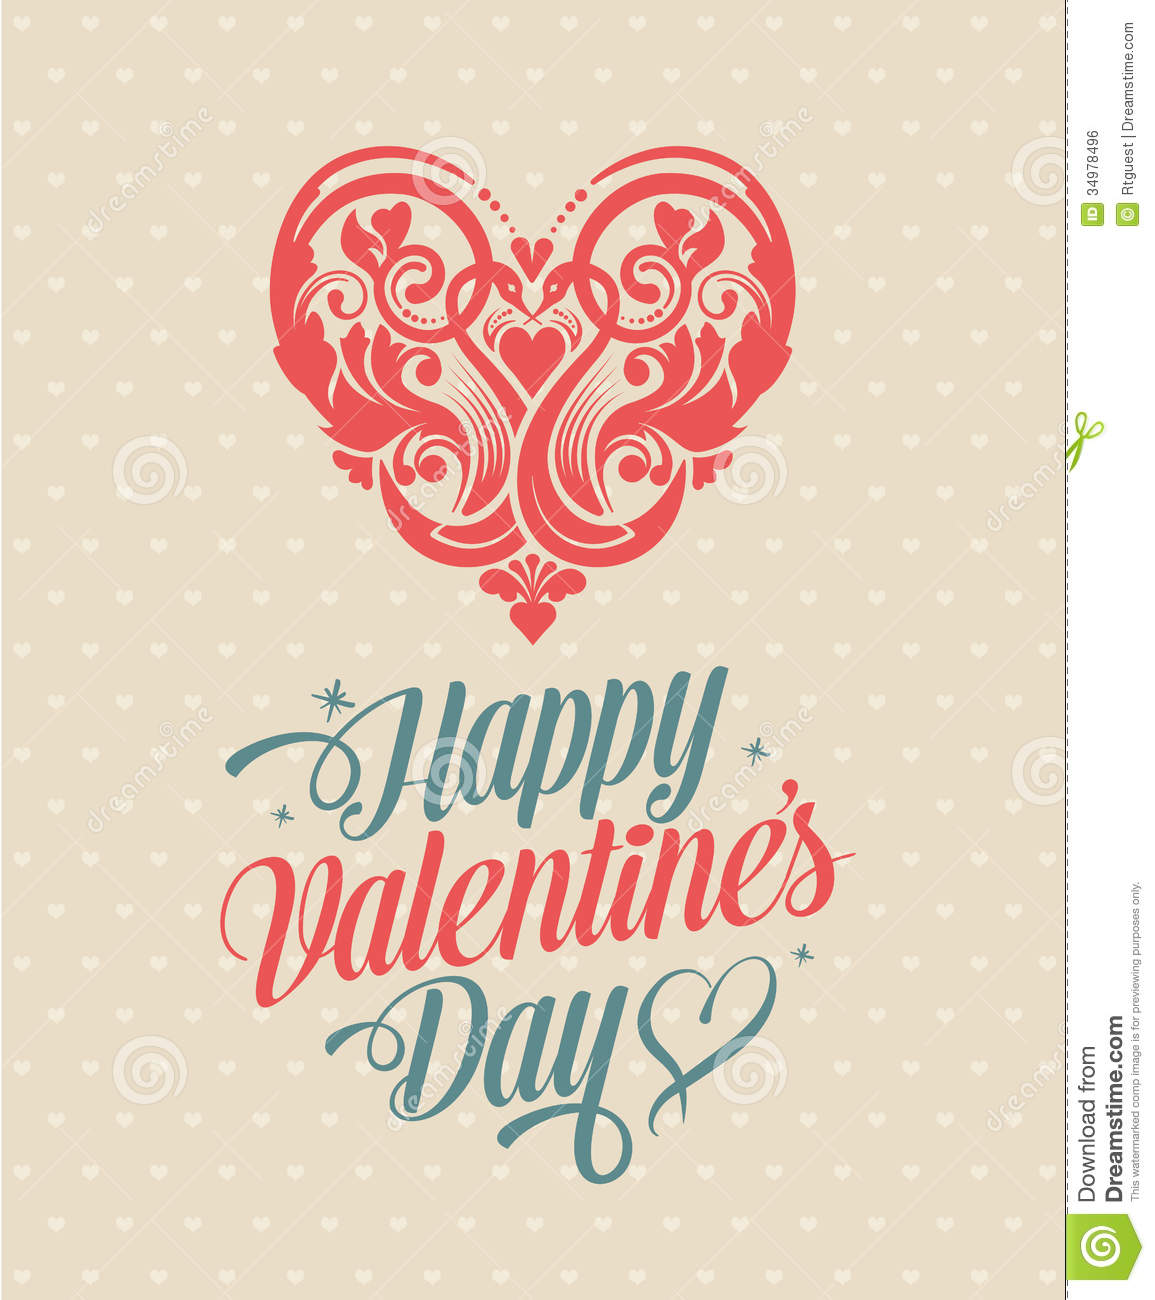 Retro Vintage Happy Valentines Day Greeting Card Stock Vector